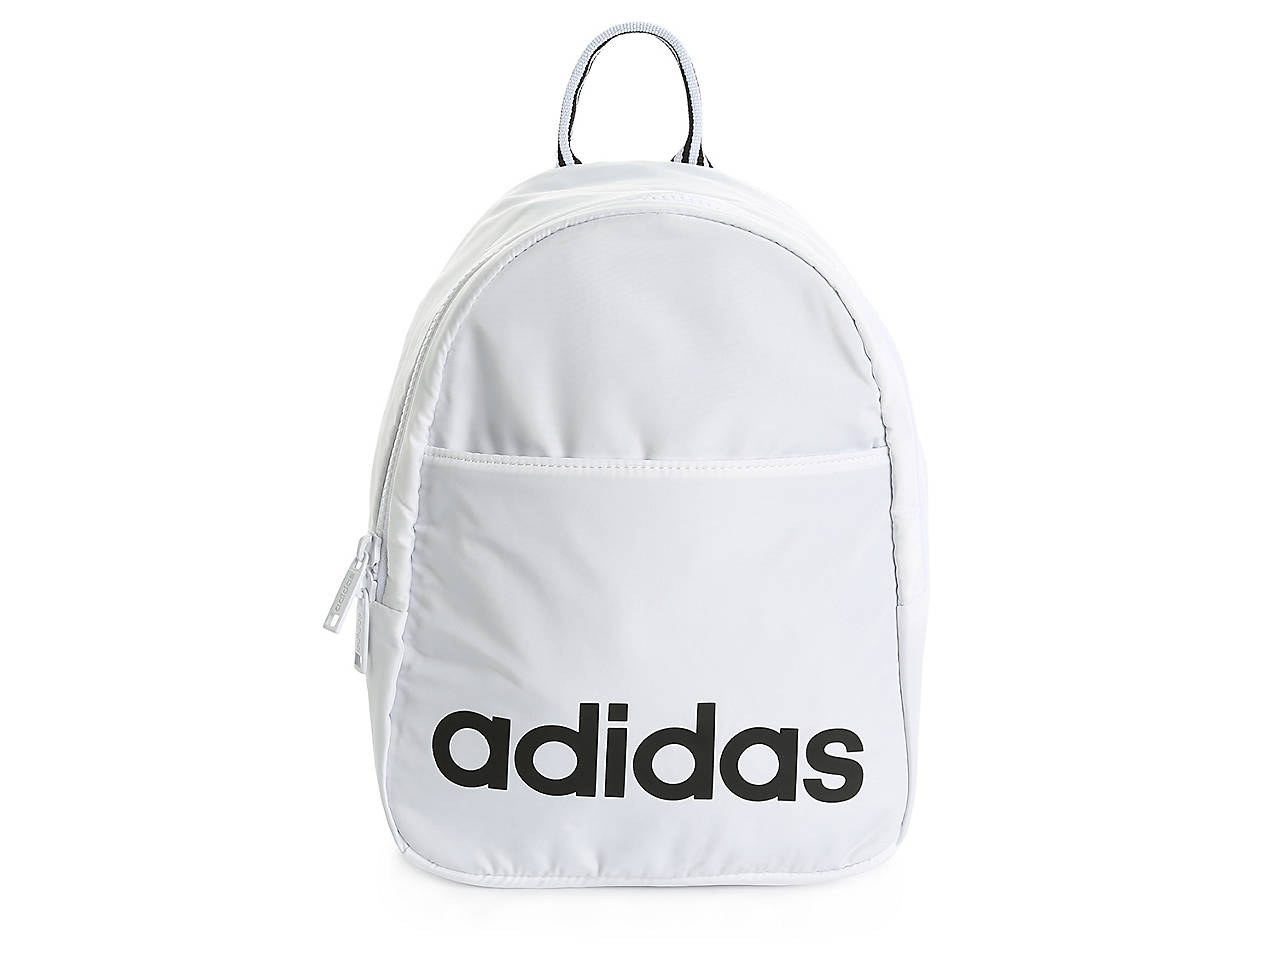 677af0e4a9 adidas Core Mini Backpack Women's Handbags & Accessories | DSW